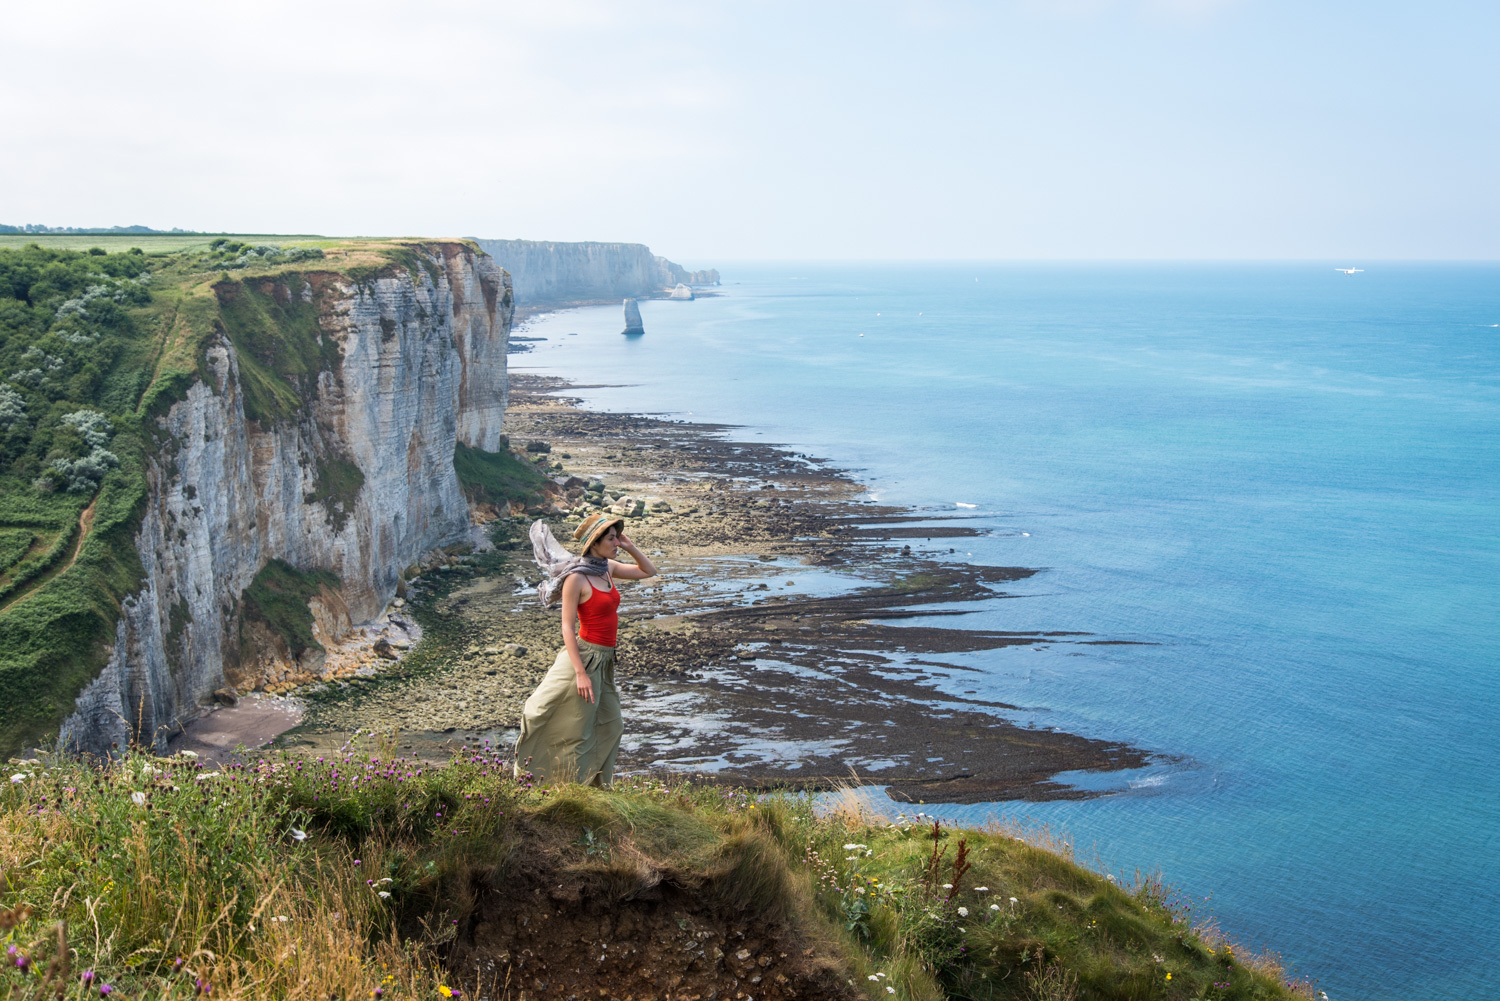 On the GR21 track between Yport and Etretat